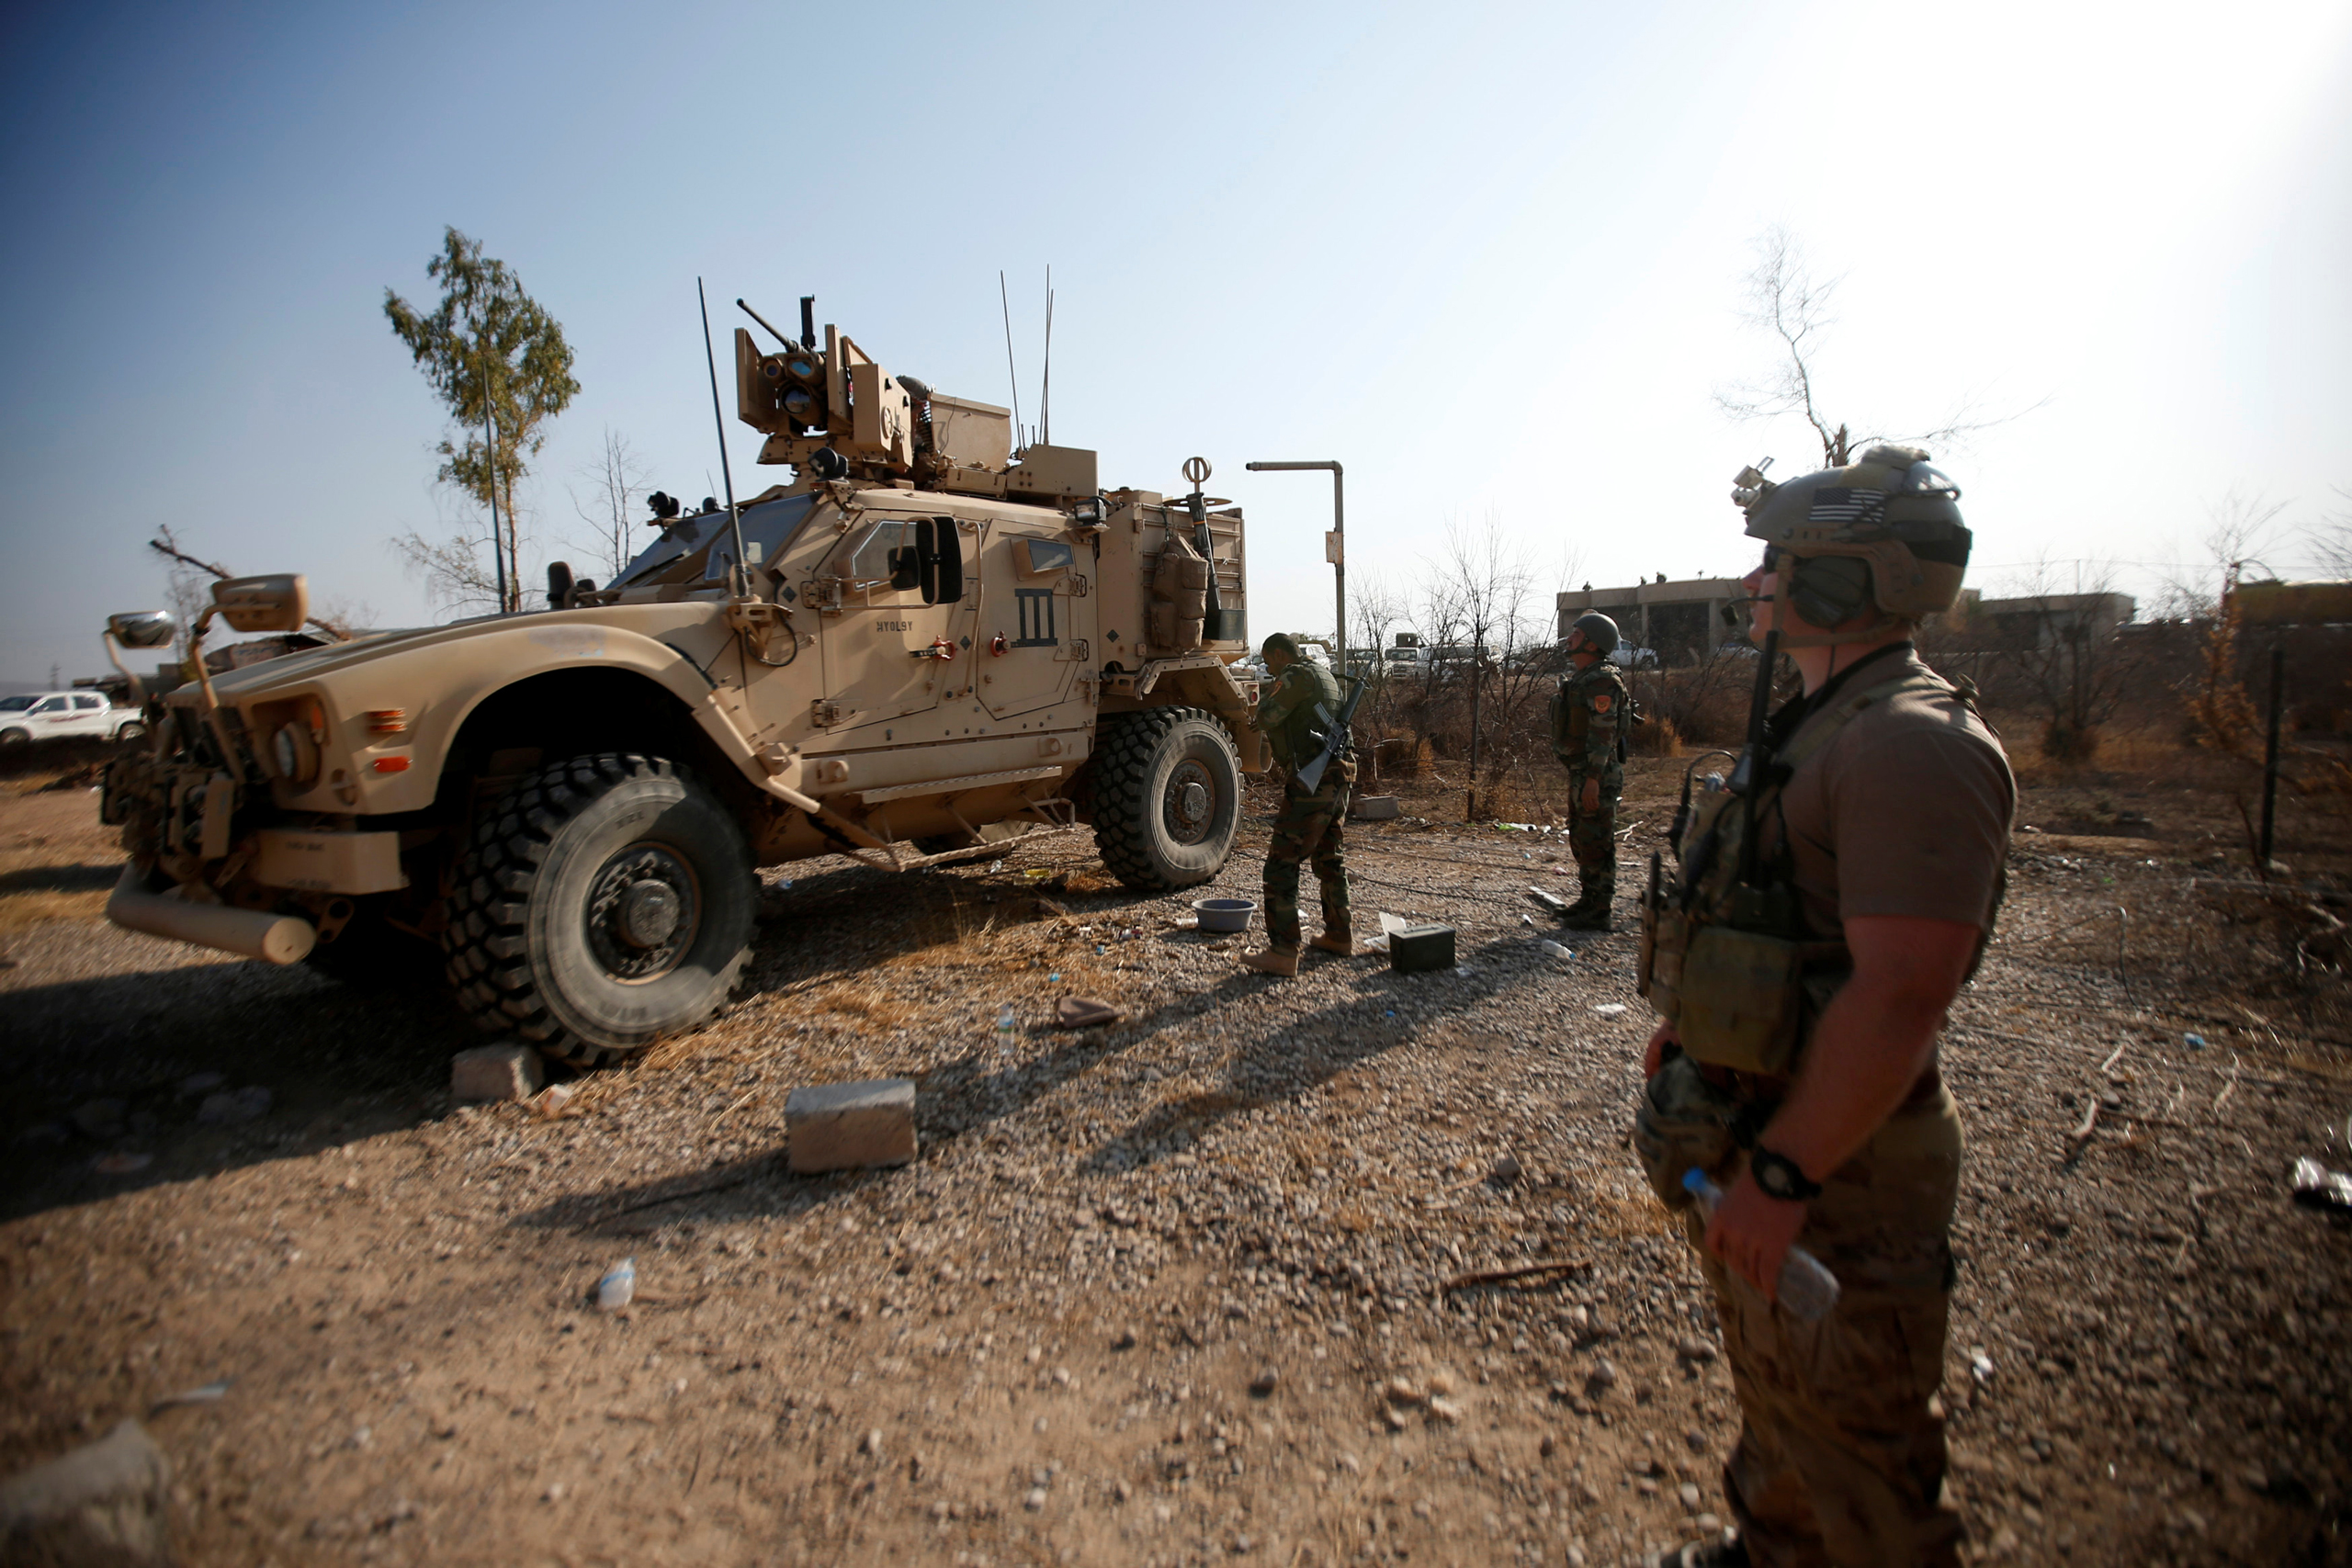 U.S. military vehicles are seen during an operation to attack Islamic State militants in the town of Bashiqa, east of Mosul, Iraq, on Nov. 7, 2016.